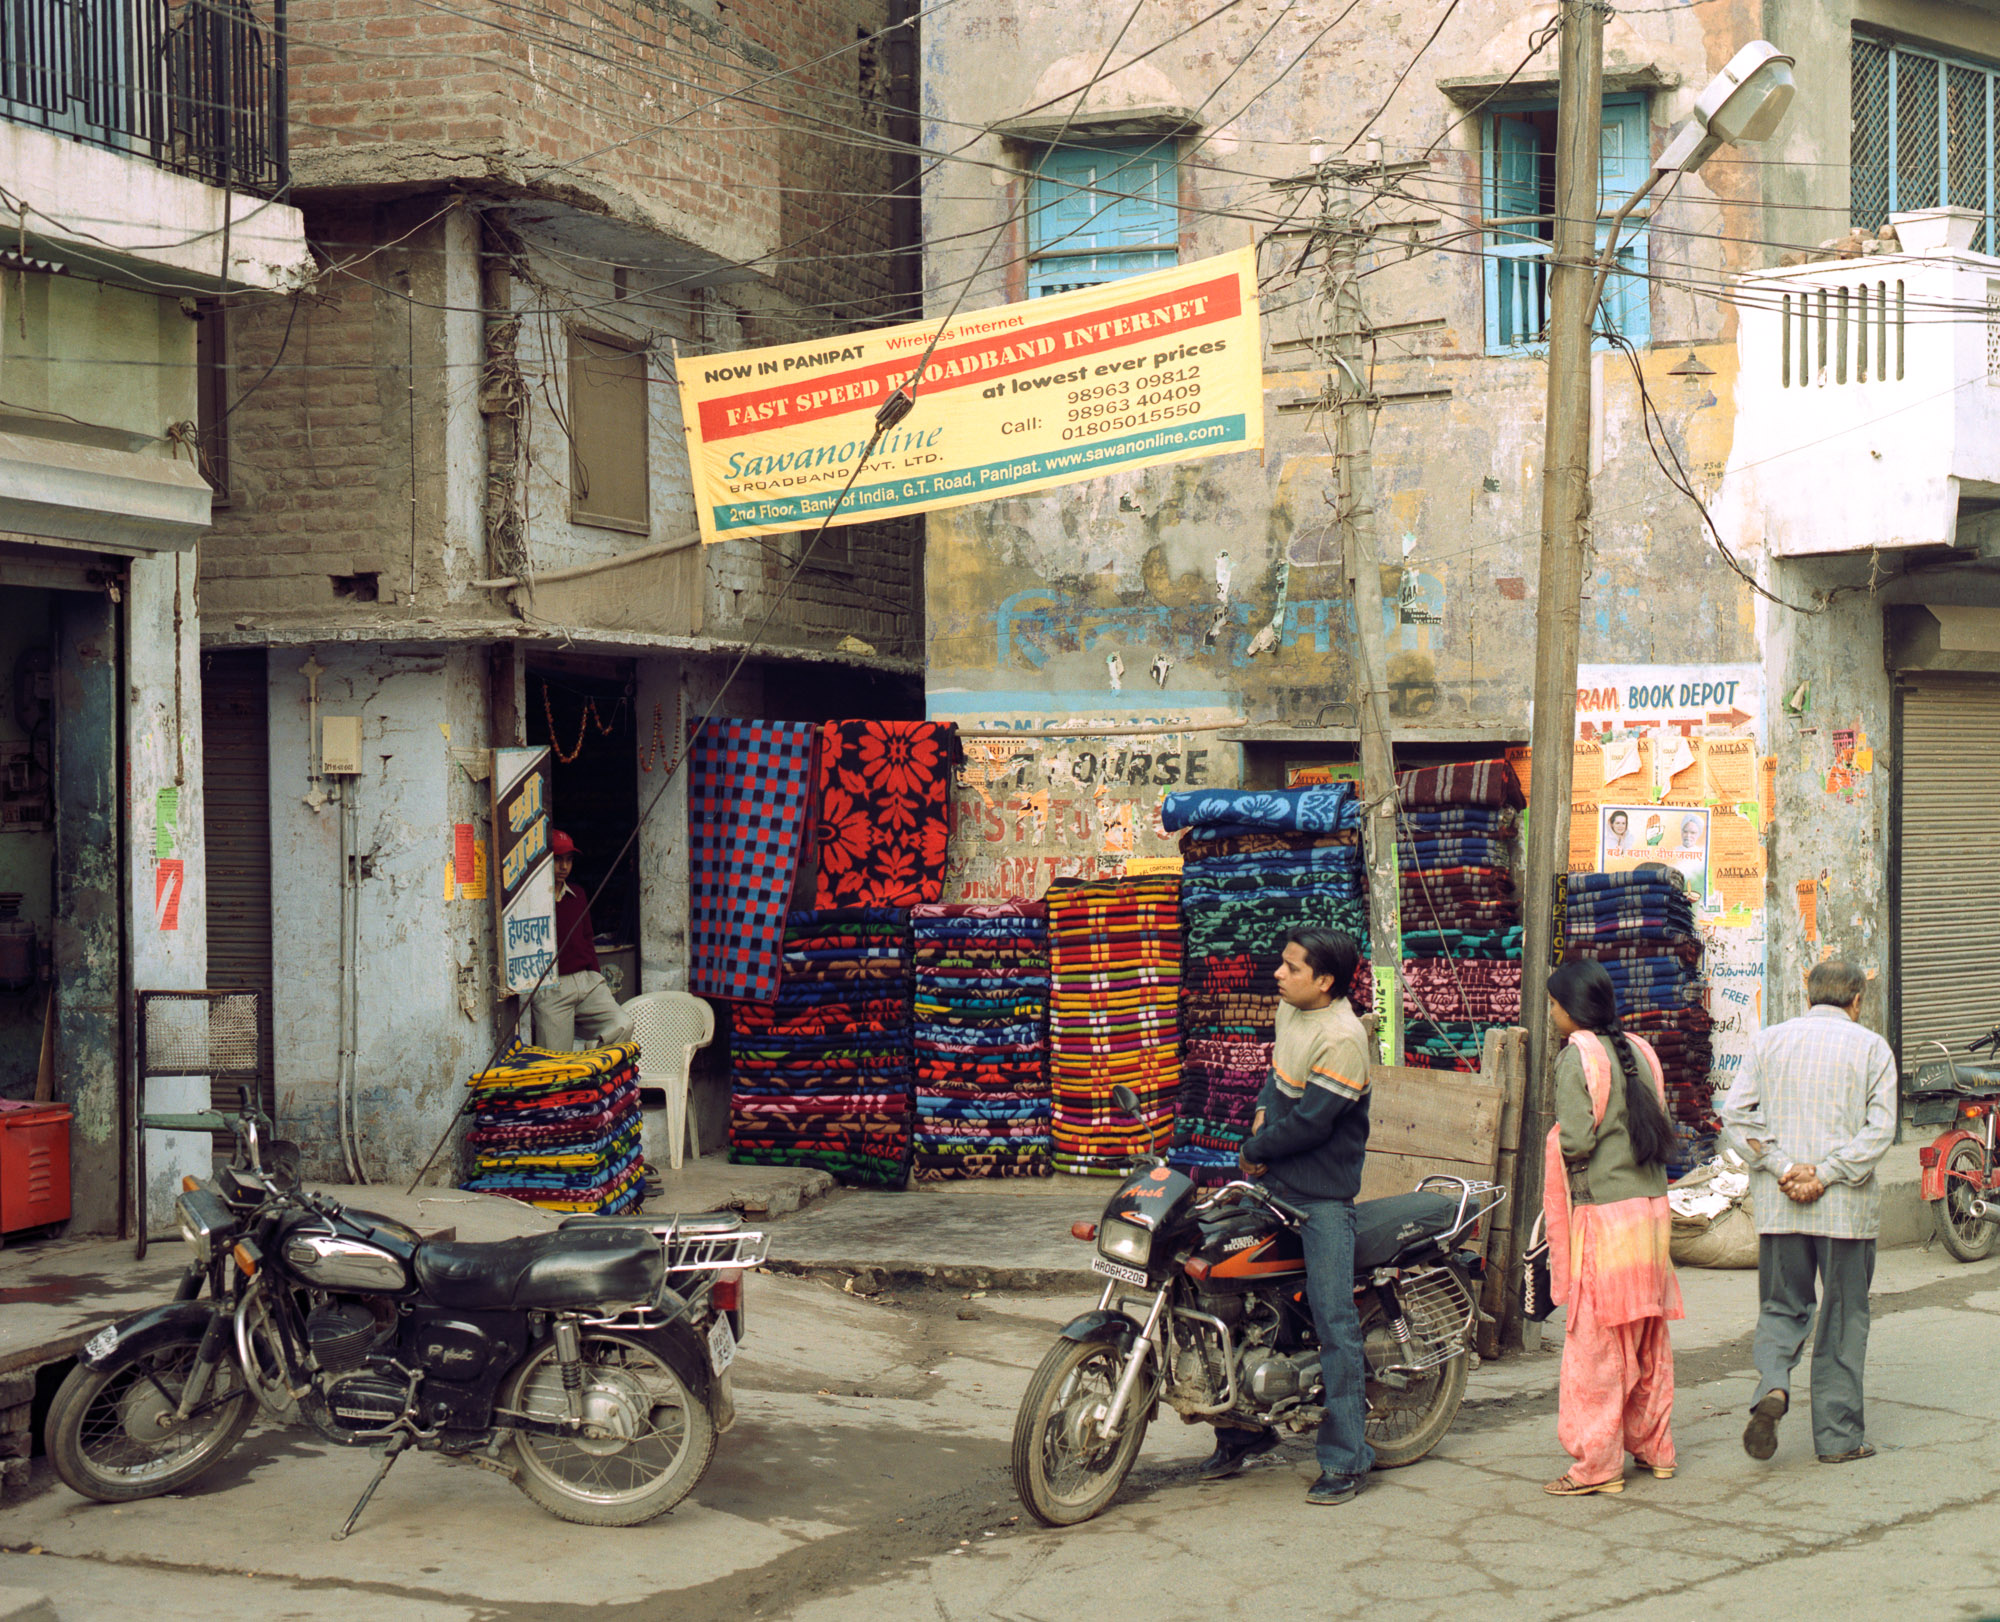 One of the many shops trading colourful shoddy blankets within Panipat itself.